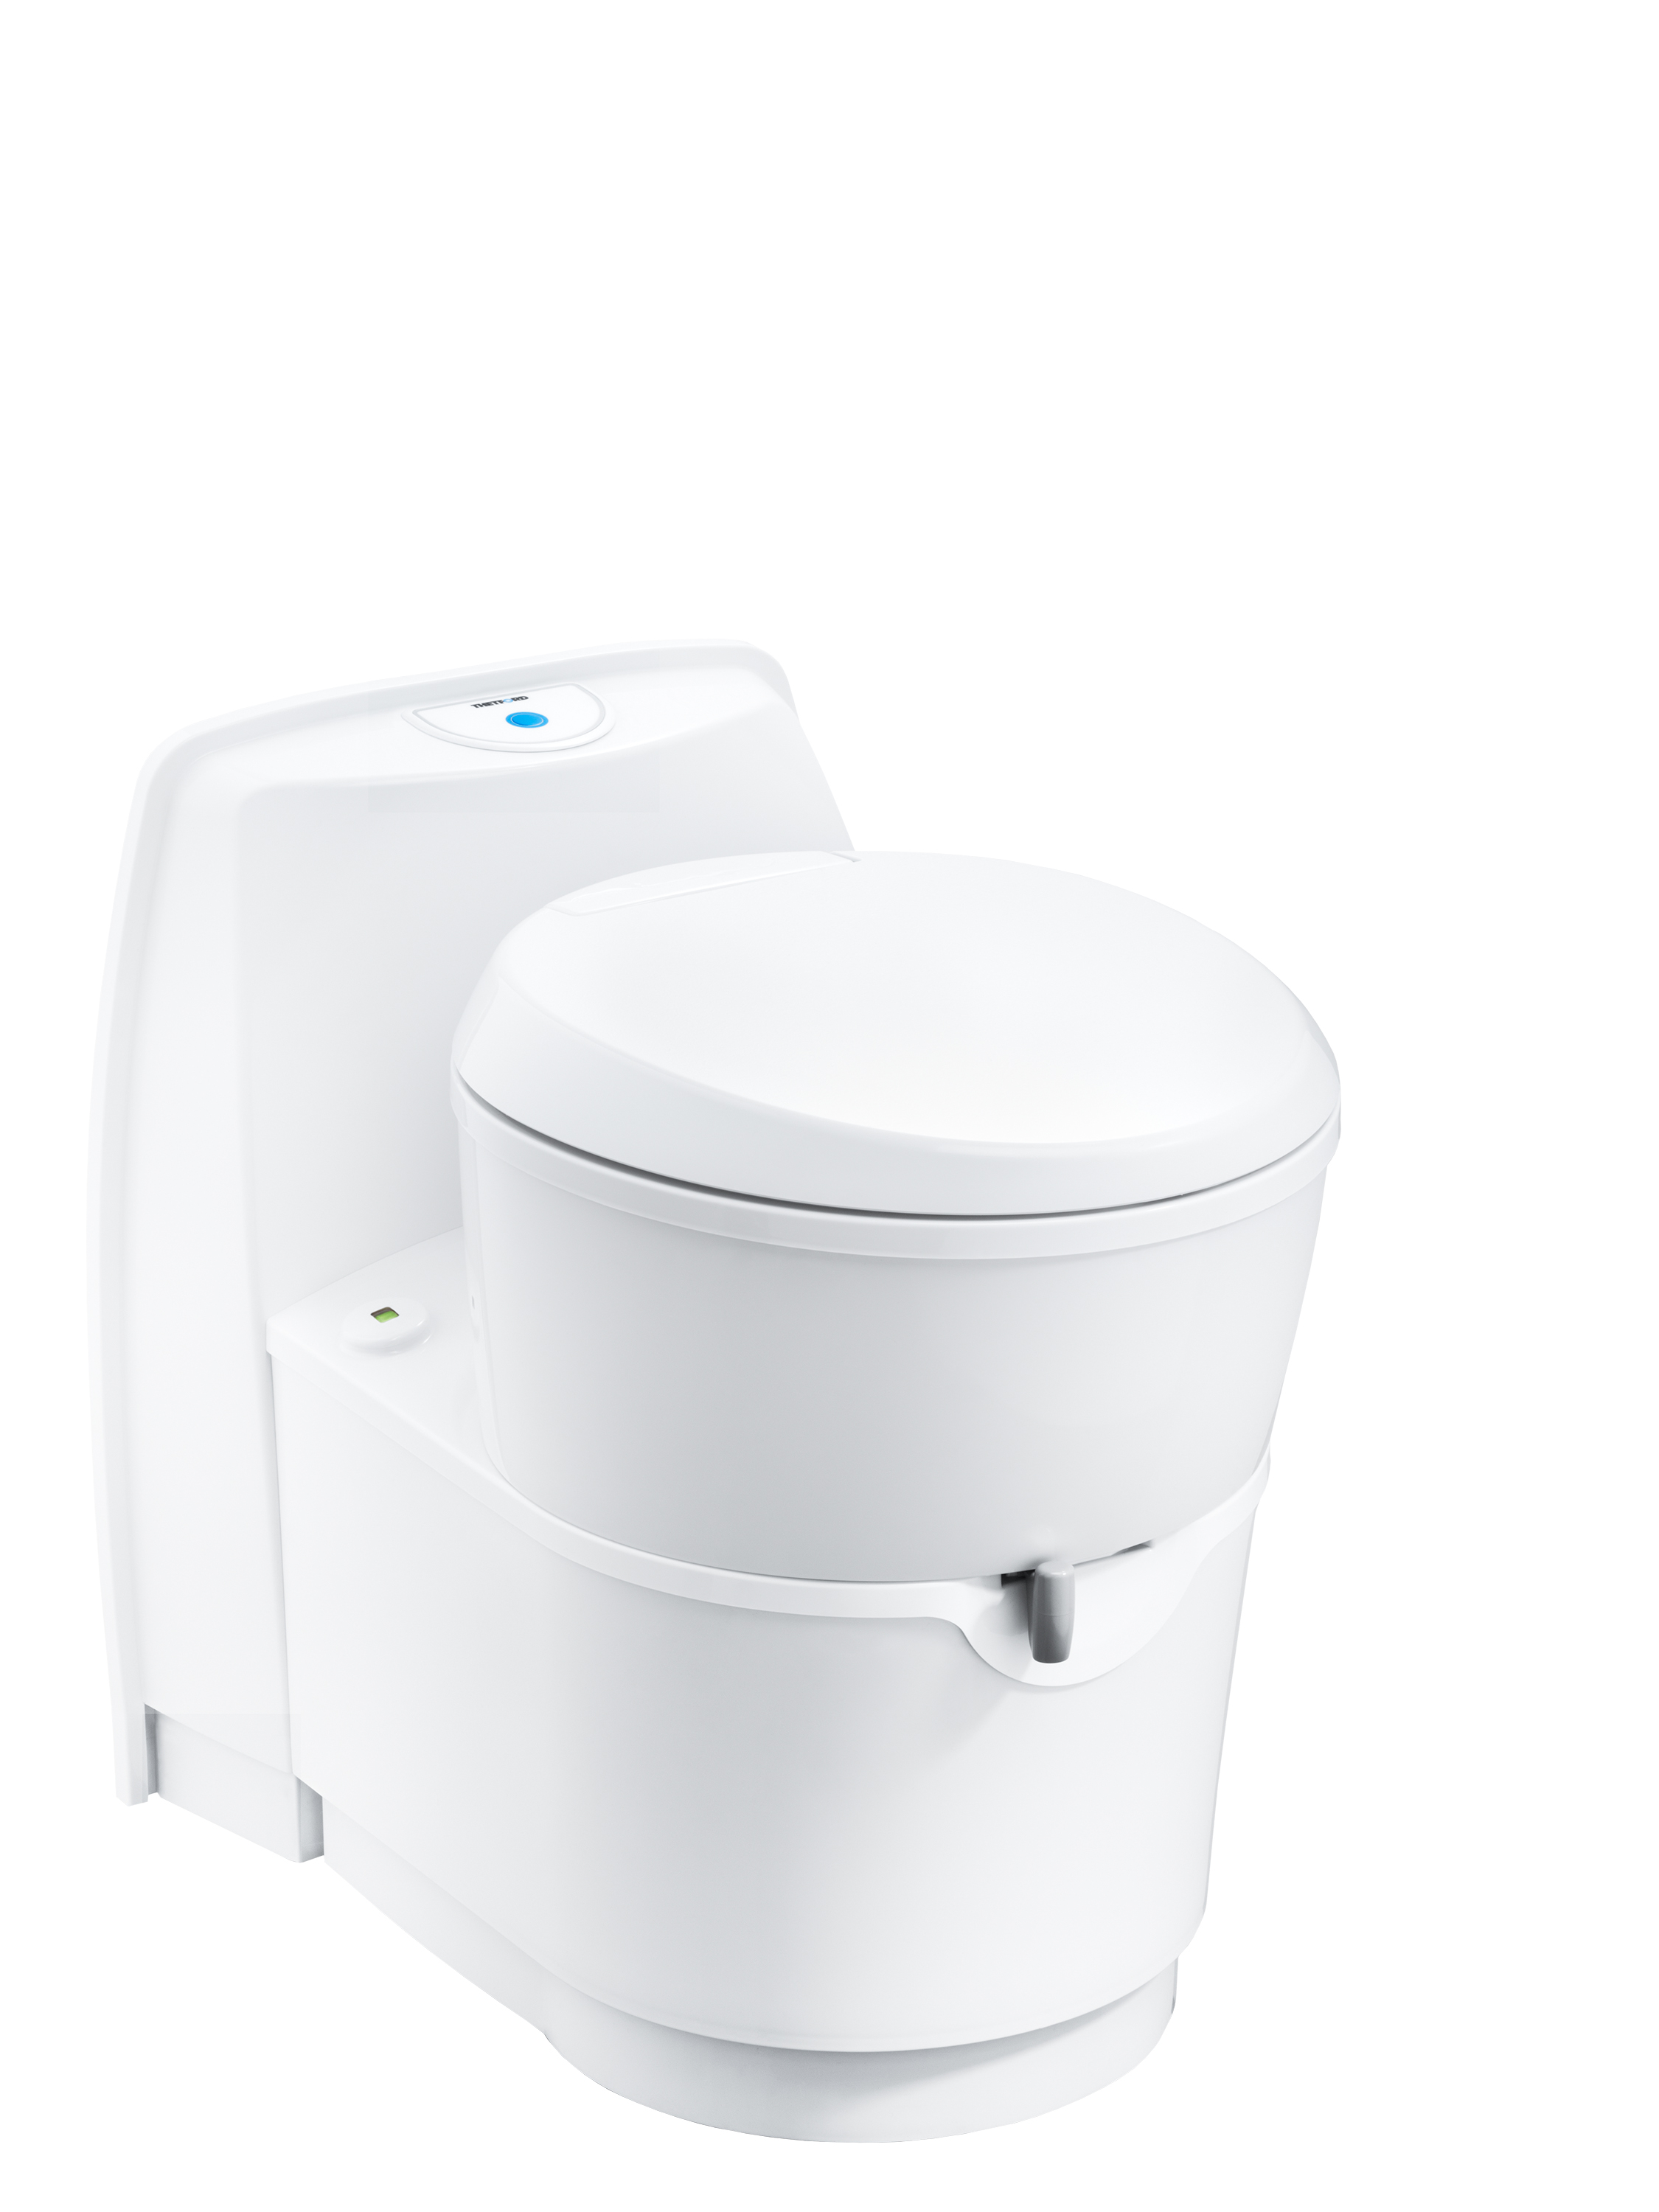 C220 S/CS/CW Cassette Toilets | Products | Thetford